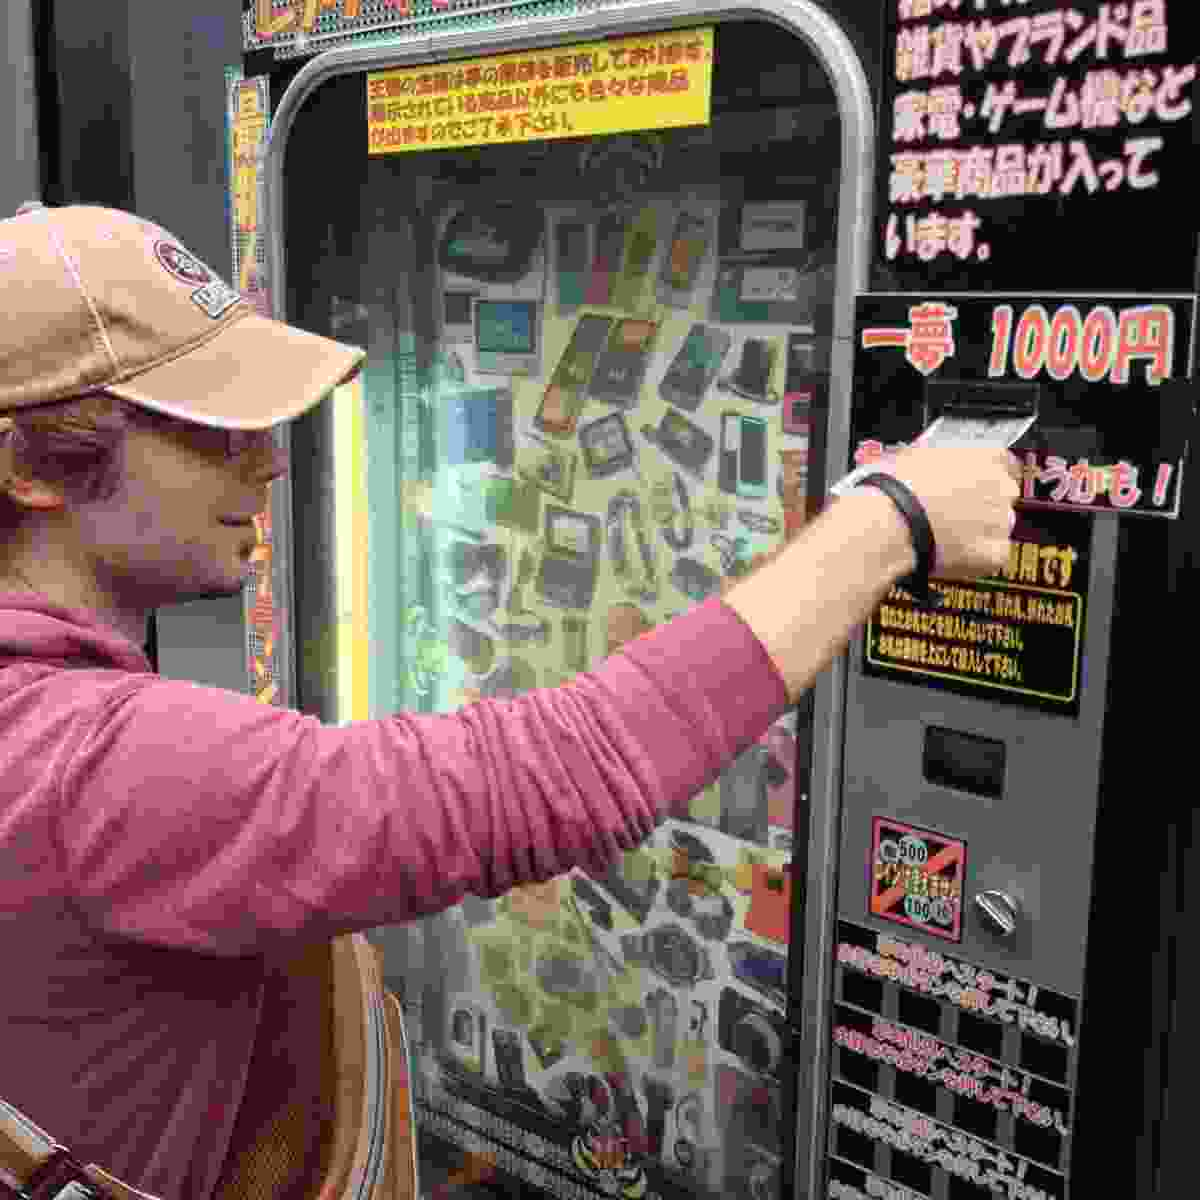 A tourist trying his luck on a lucky dip vending machine in Japan (Steve Parker)